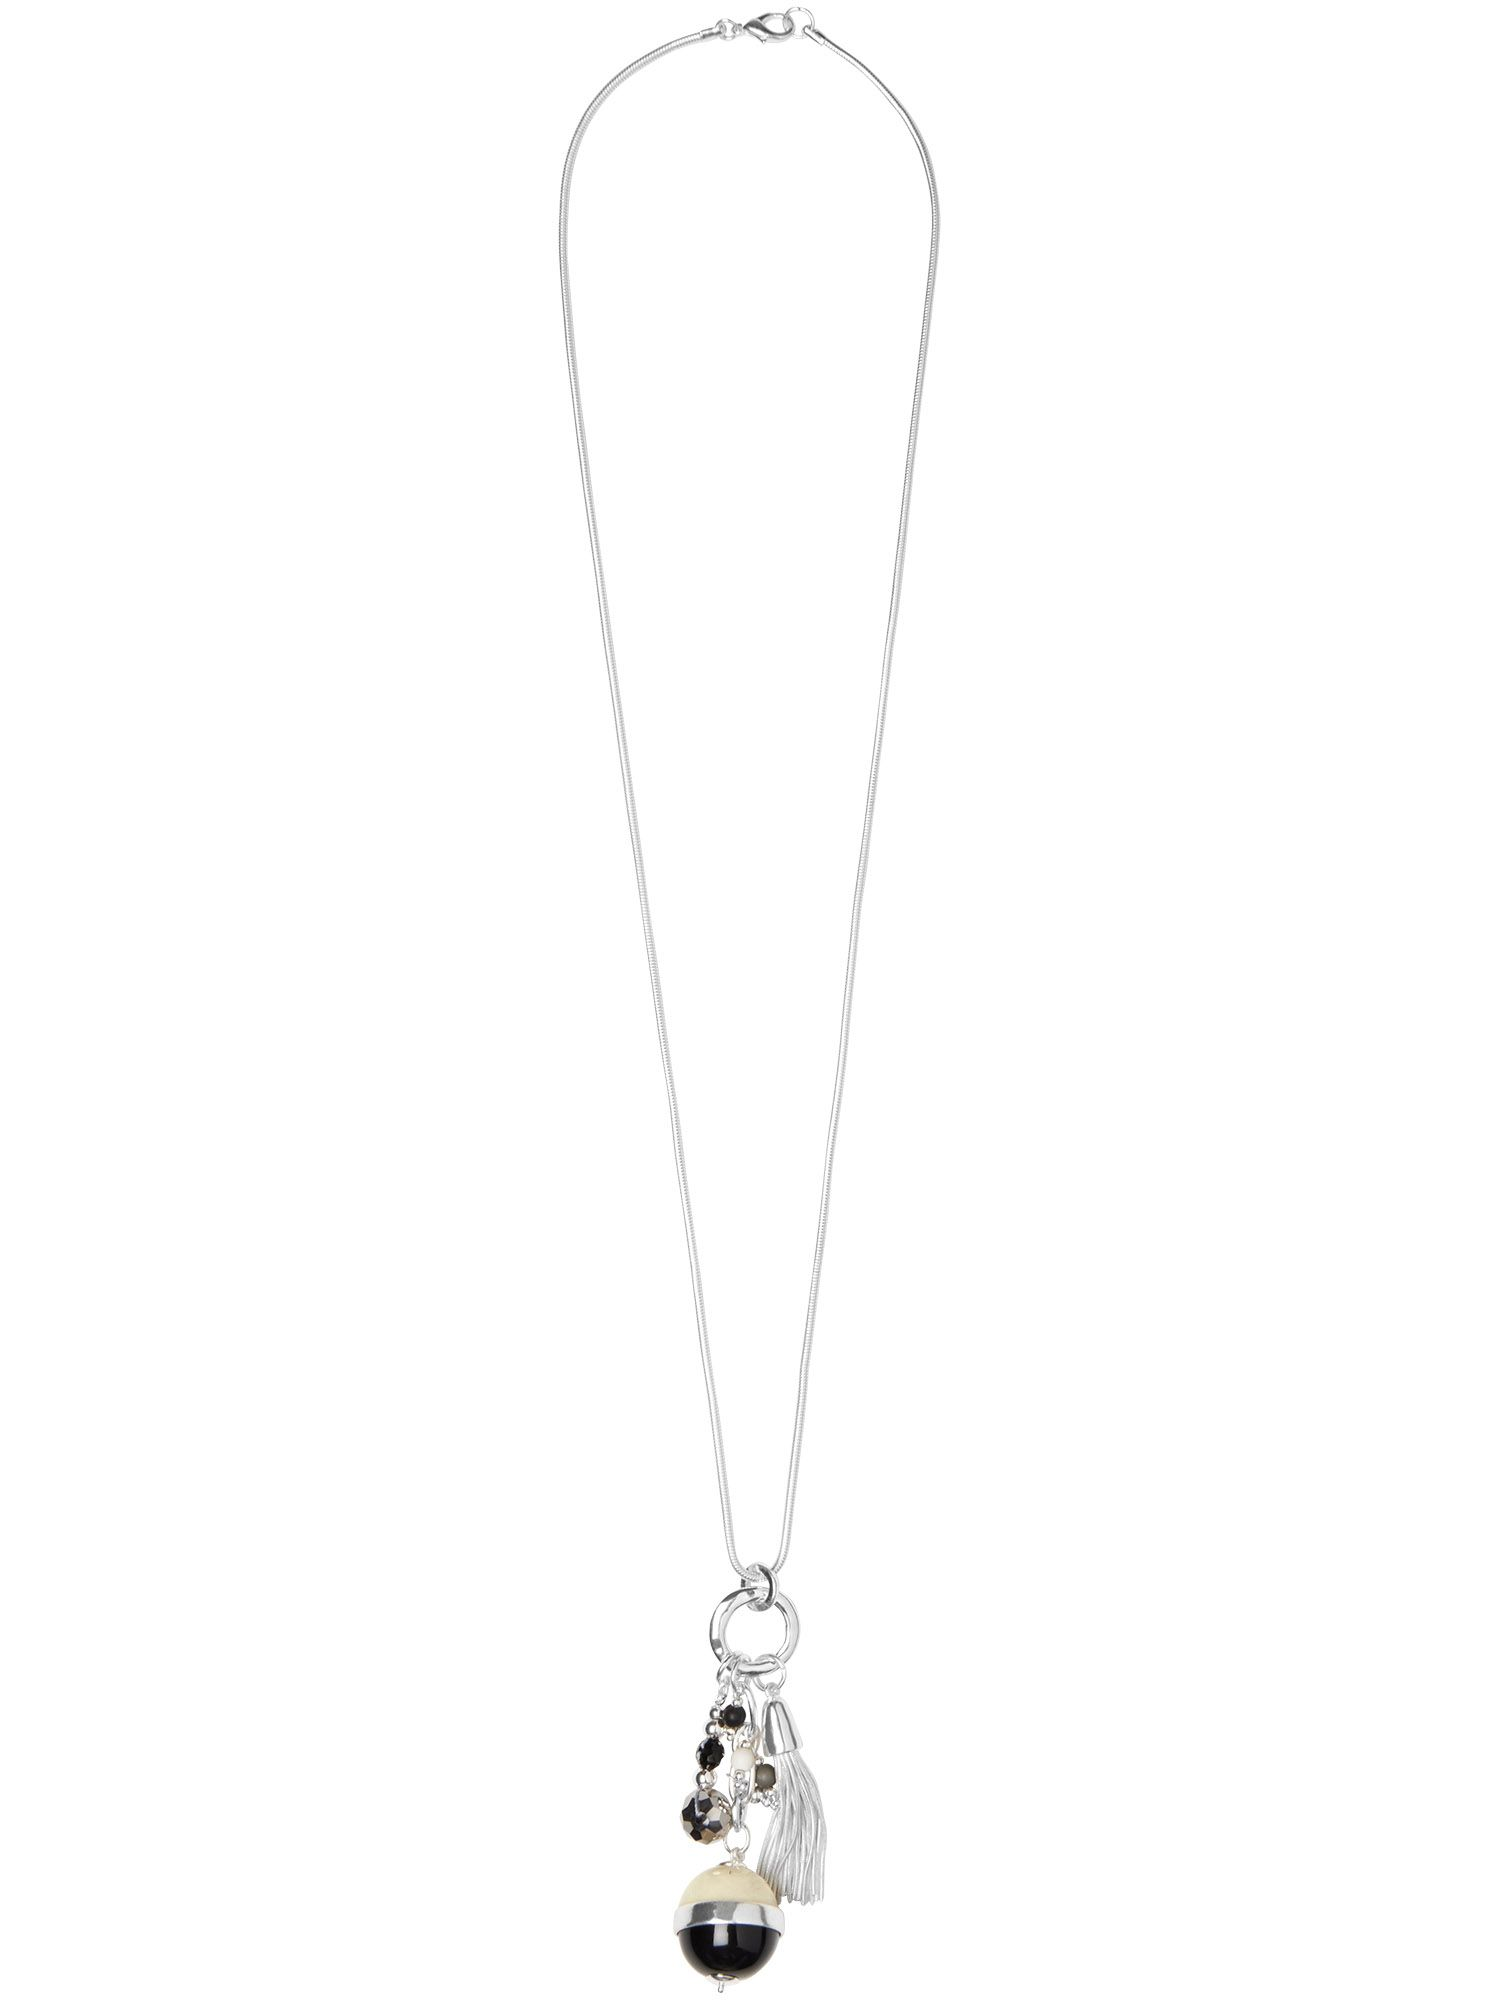 Kaley ball pendant necklace